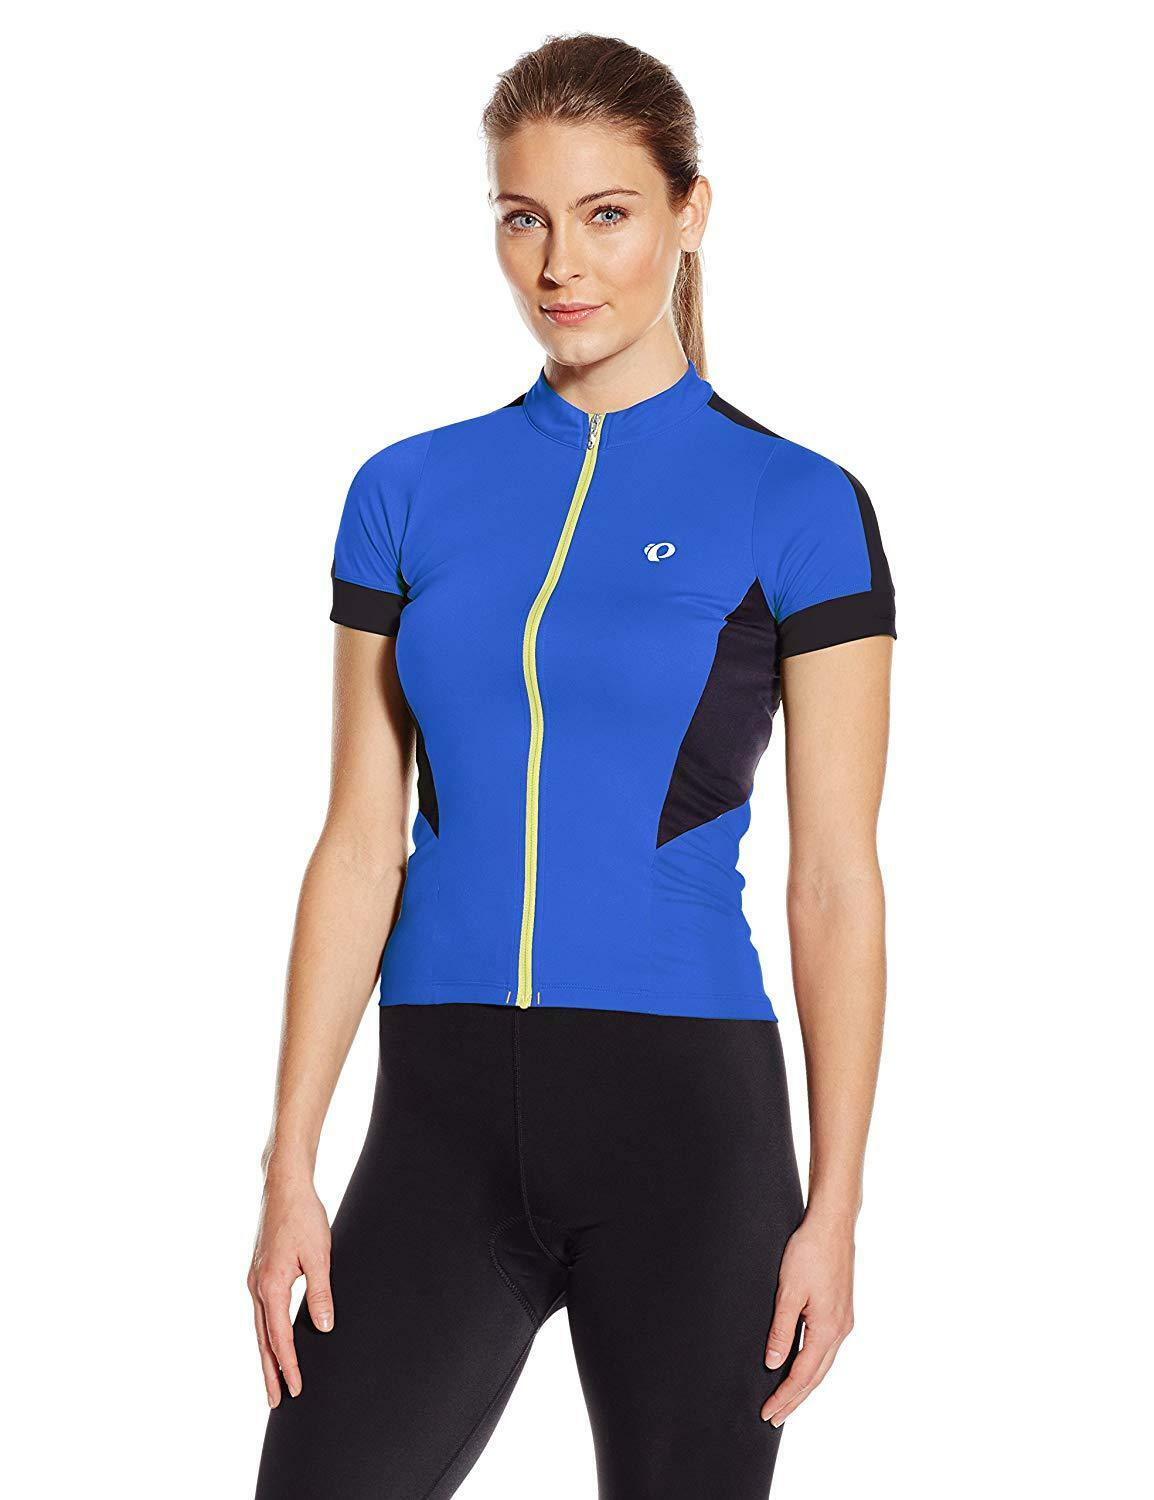 NWT Pearl Izumi Women's Elite Pursuit Jersey L Large Dazzling bluee Short Sleeve